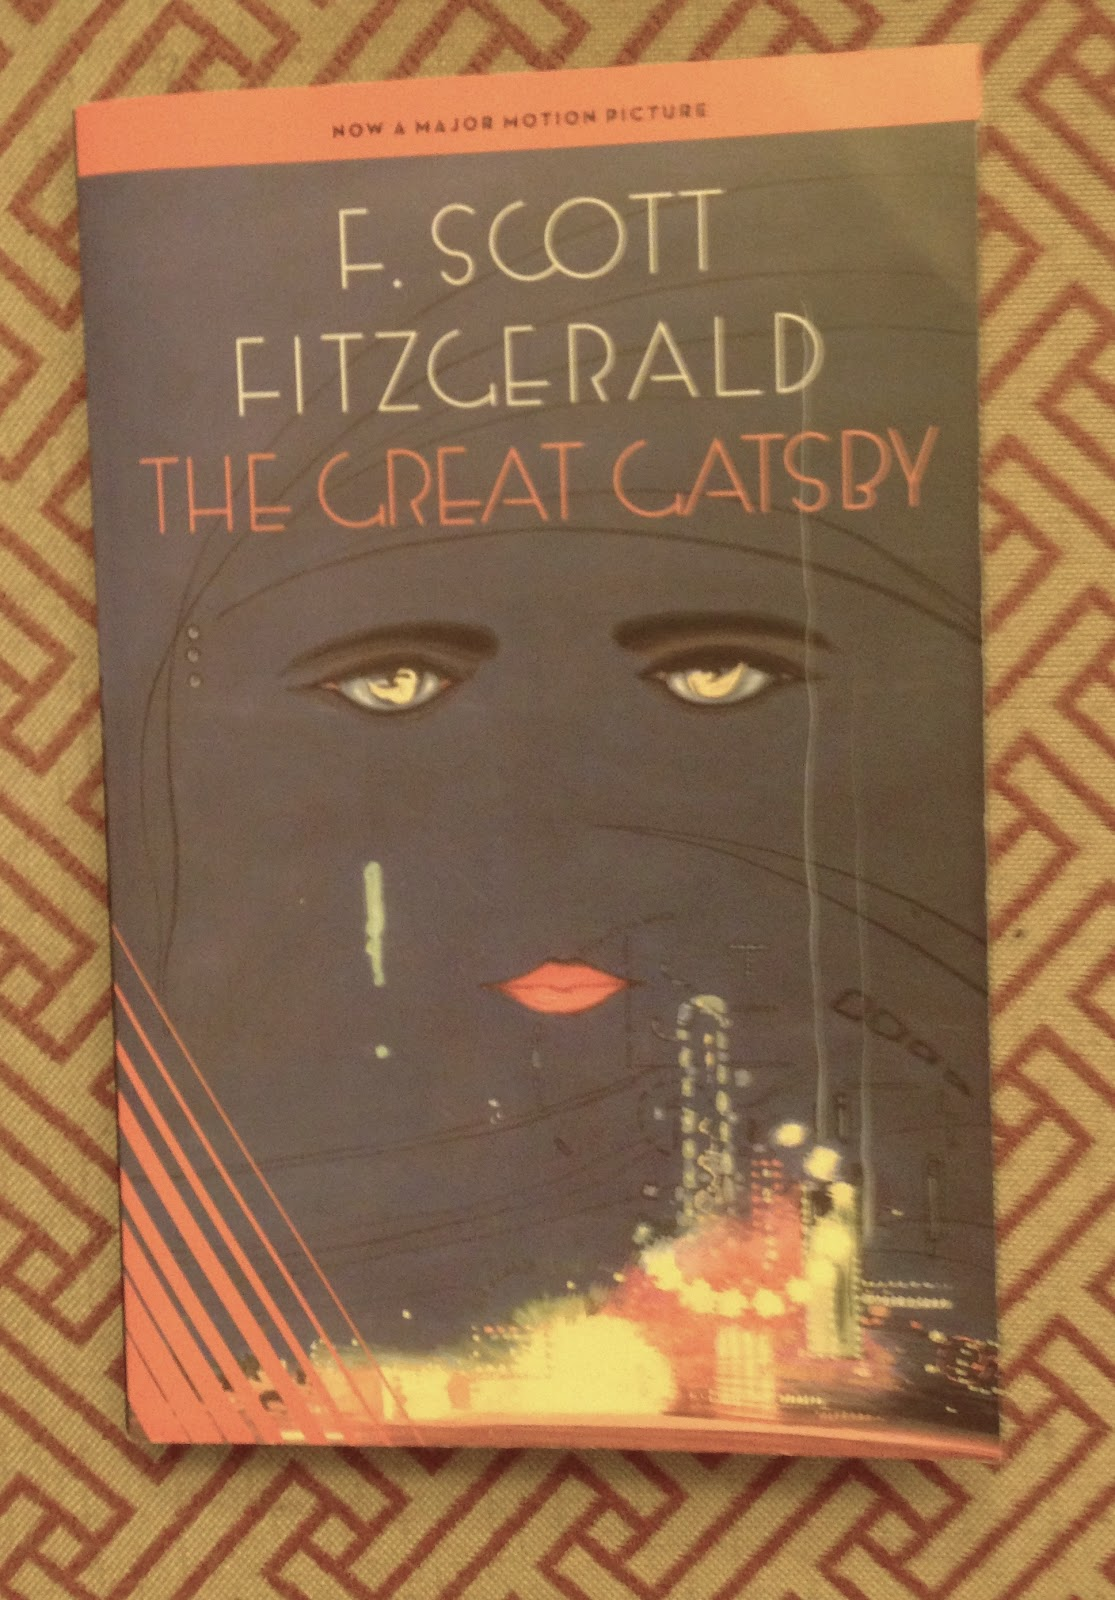 the great gatsby chap 1 3 Free summary and analysis of chapter 3 in f scott fitzgerald's the great gatsby that won't make you snore we promise.